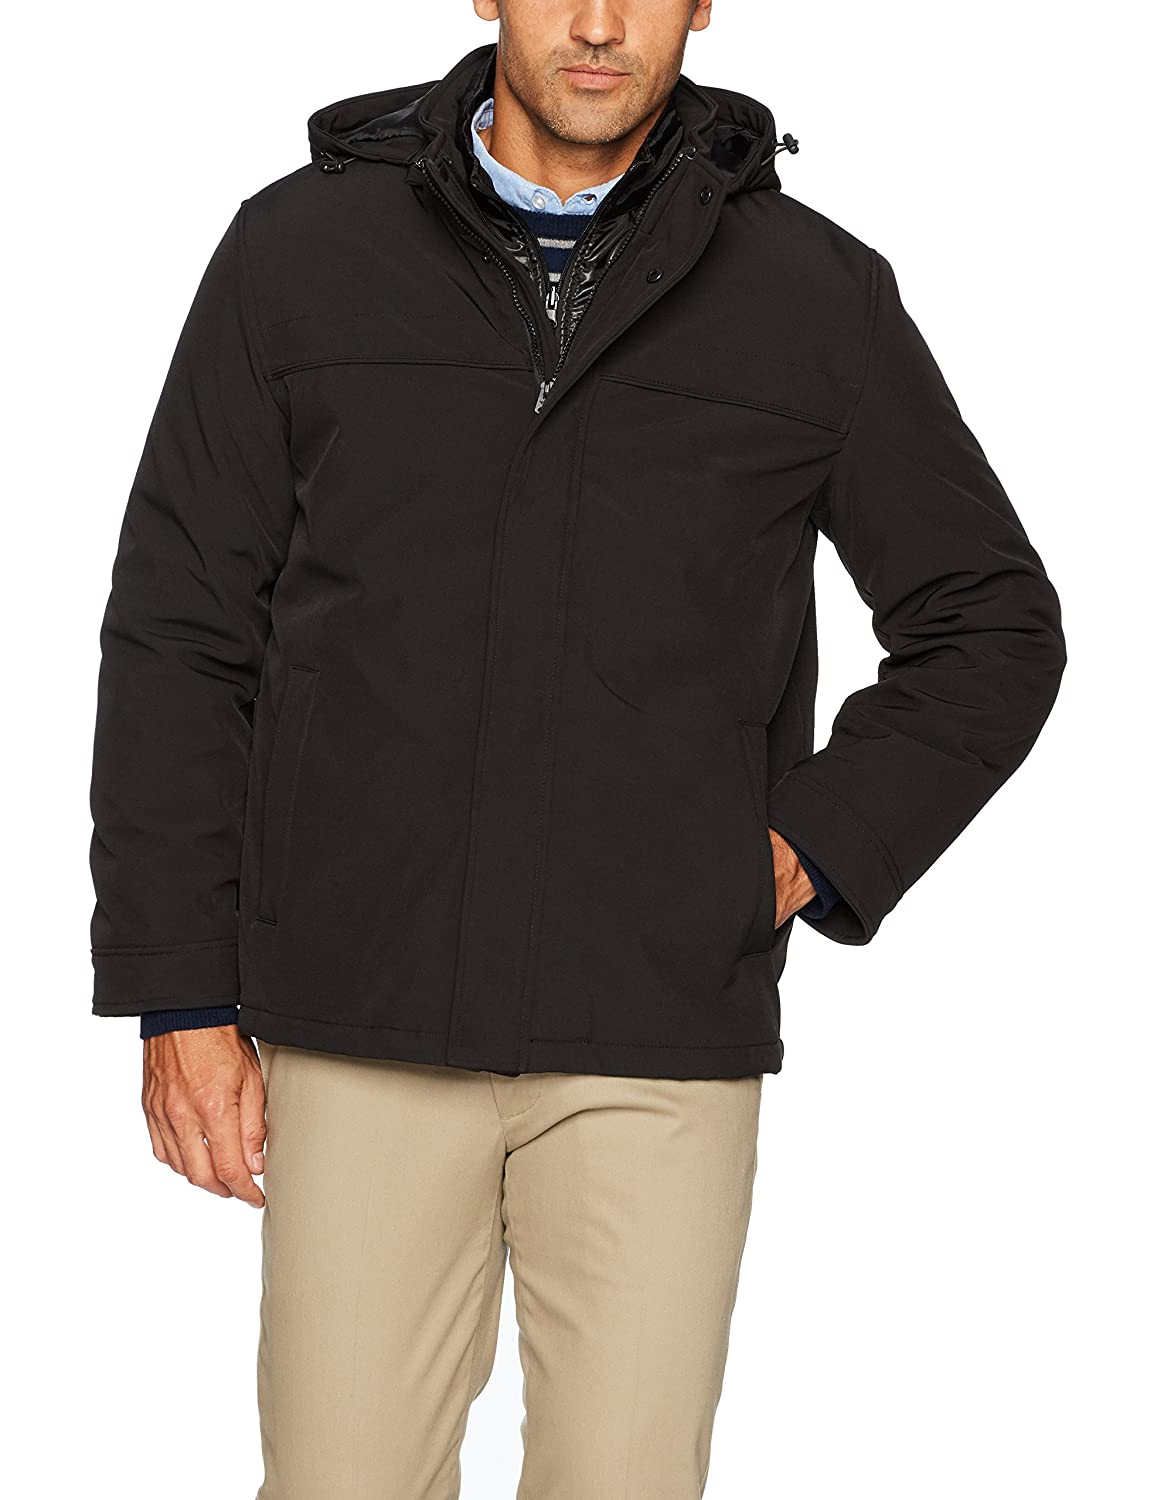 Dockers Men's 3-in-1 Hooded Soft Shell Systems Jacket Dockers Men' s Outerwear DM6RP382